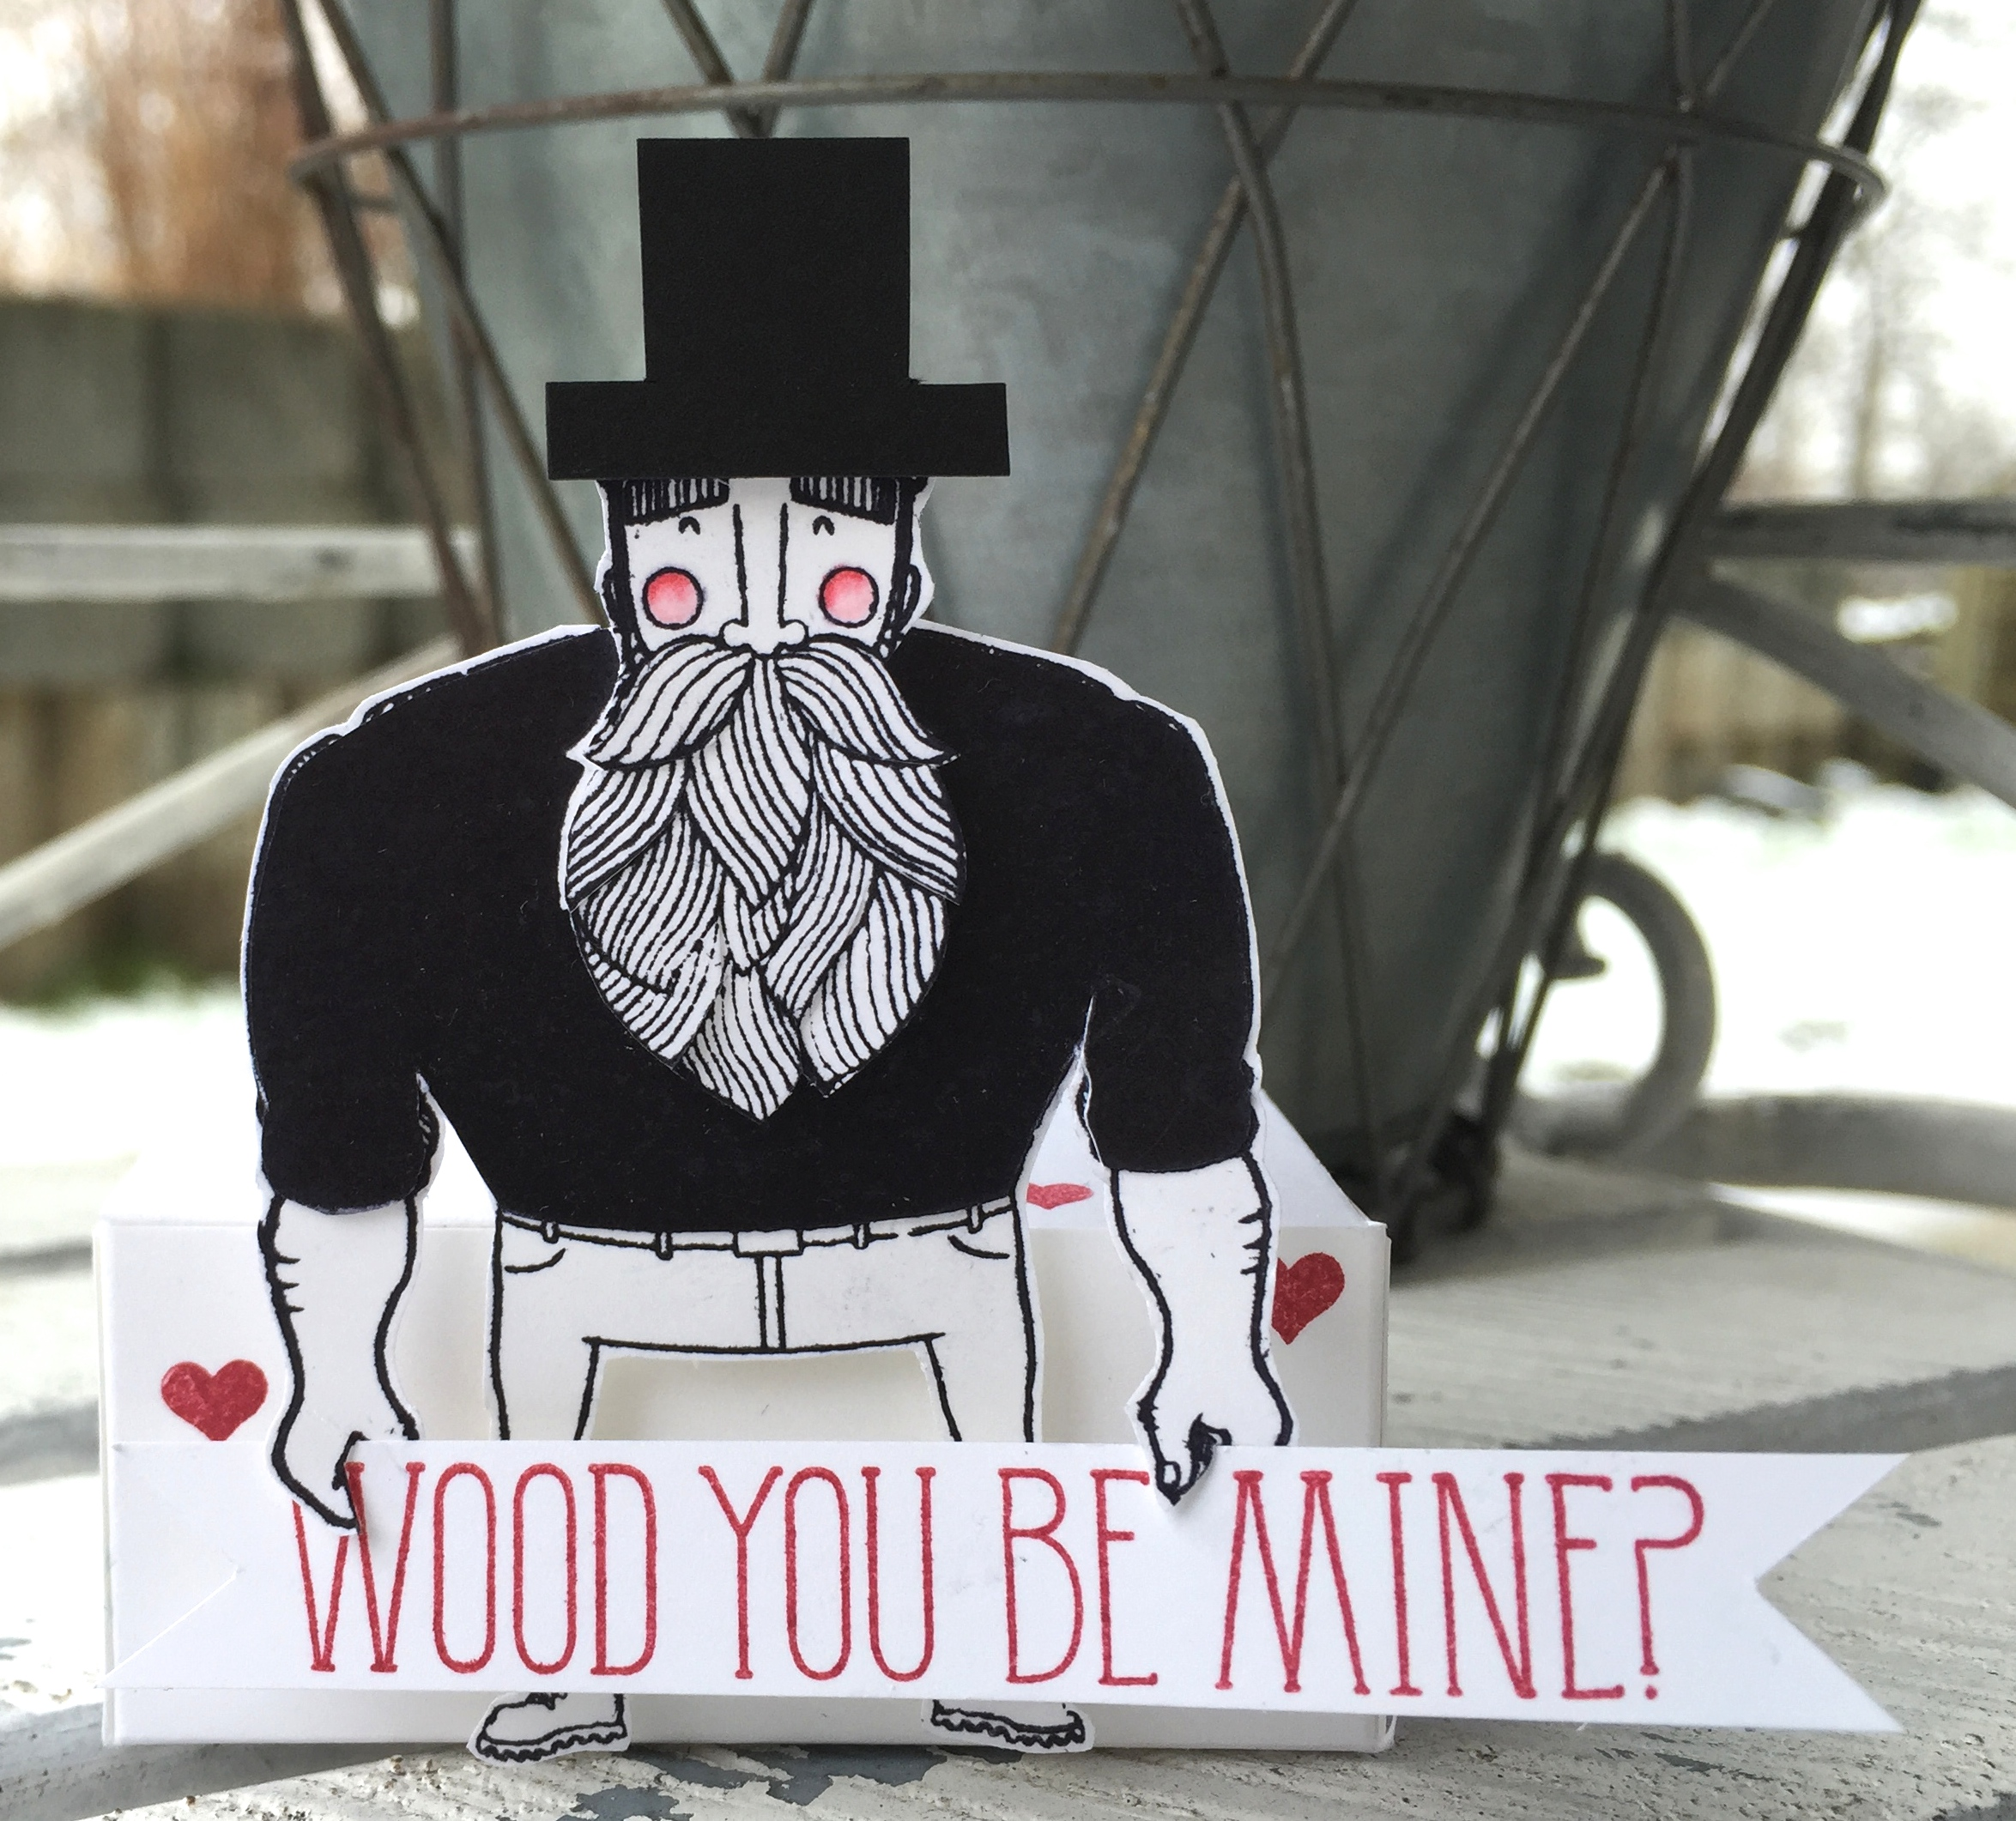 """wood you be mine?"" - Stampin´ Up! Artisan DesignTeam BlogHop 26.02.2015 - Heiratsantrag mit Stempelset ""wood you be mine"""